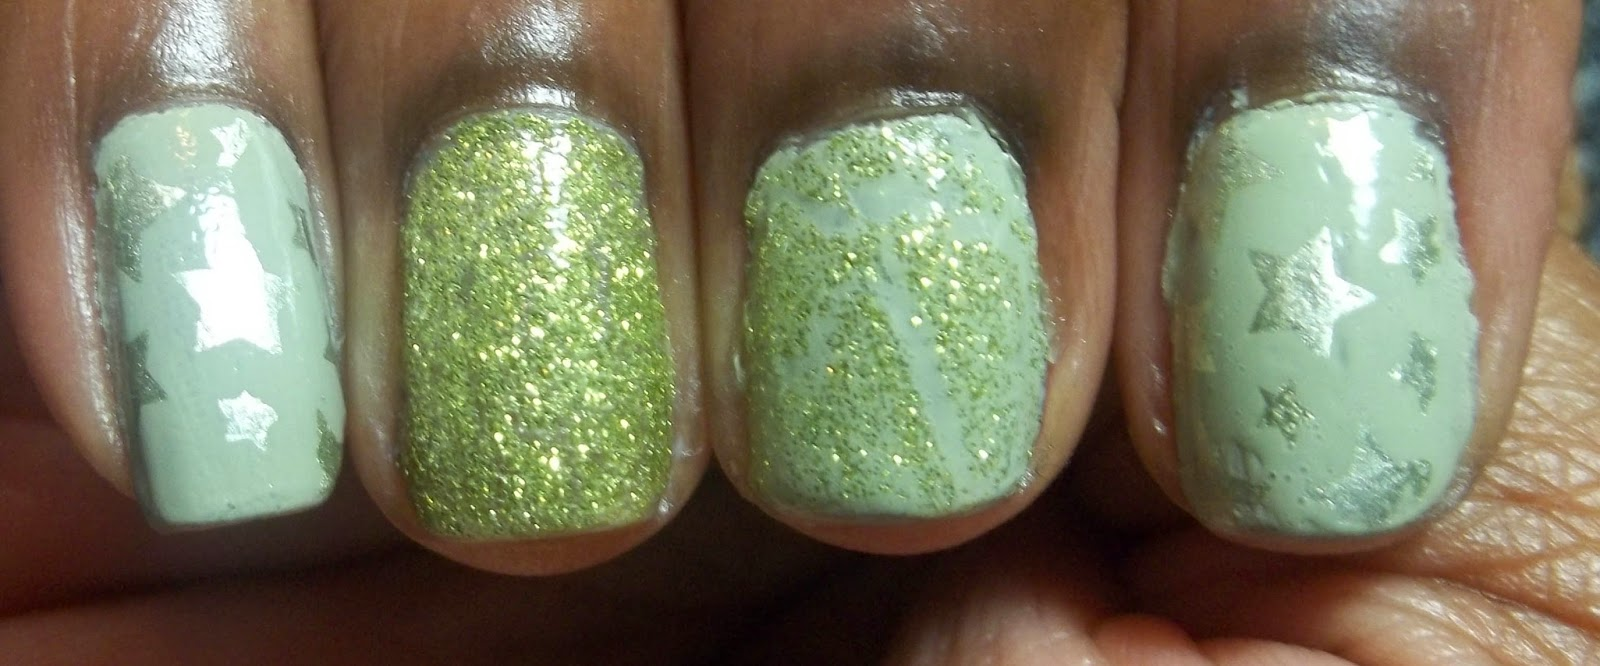 Test using chartreuse crackle glitter polish as a regular polish. Ring finger is painted with the glitter polish, middle finger has the polish applied in crackle form over a light putty green polish. Index and pinky are painted with the light putty green polish, with gold stars stamped on top.